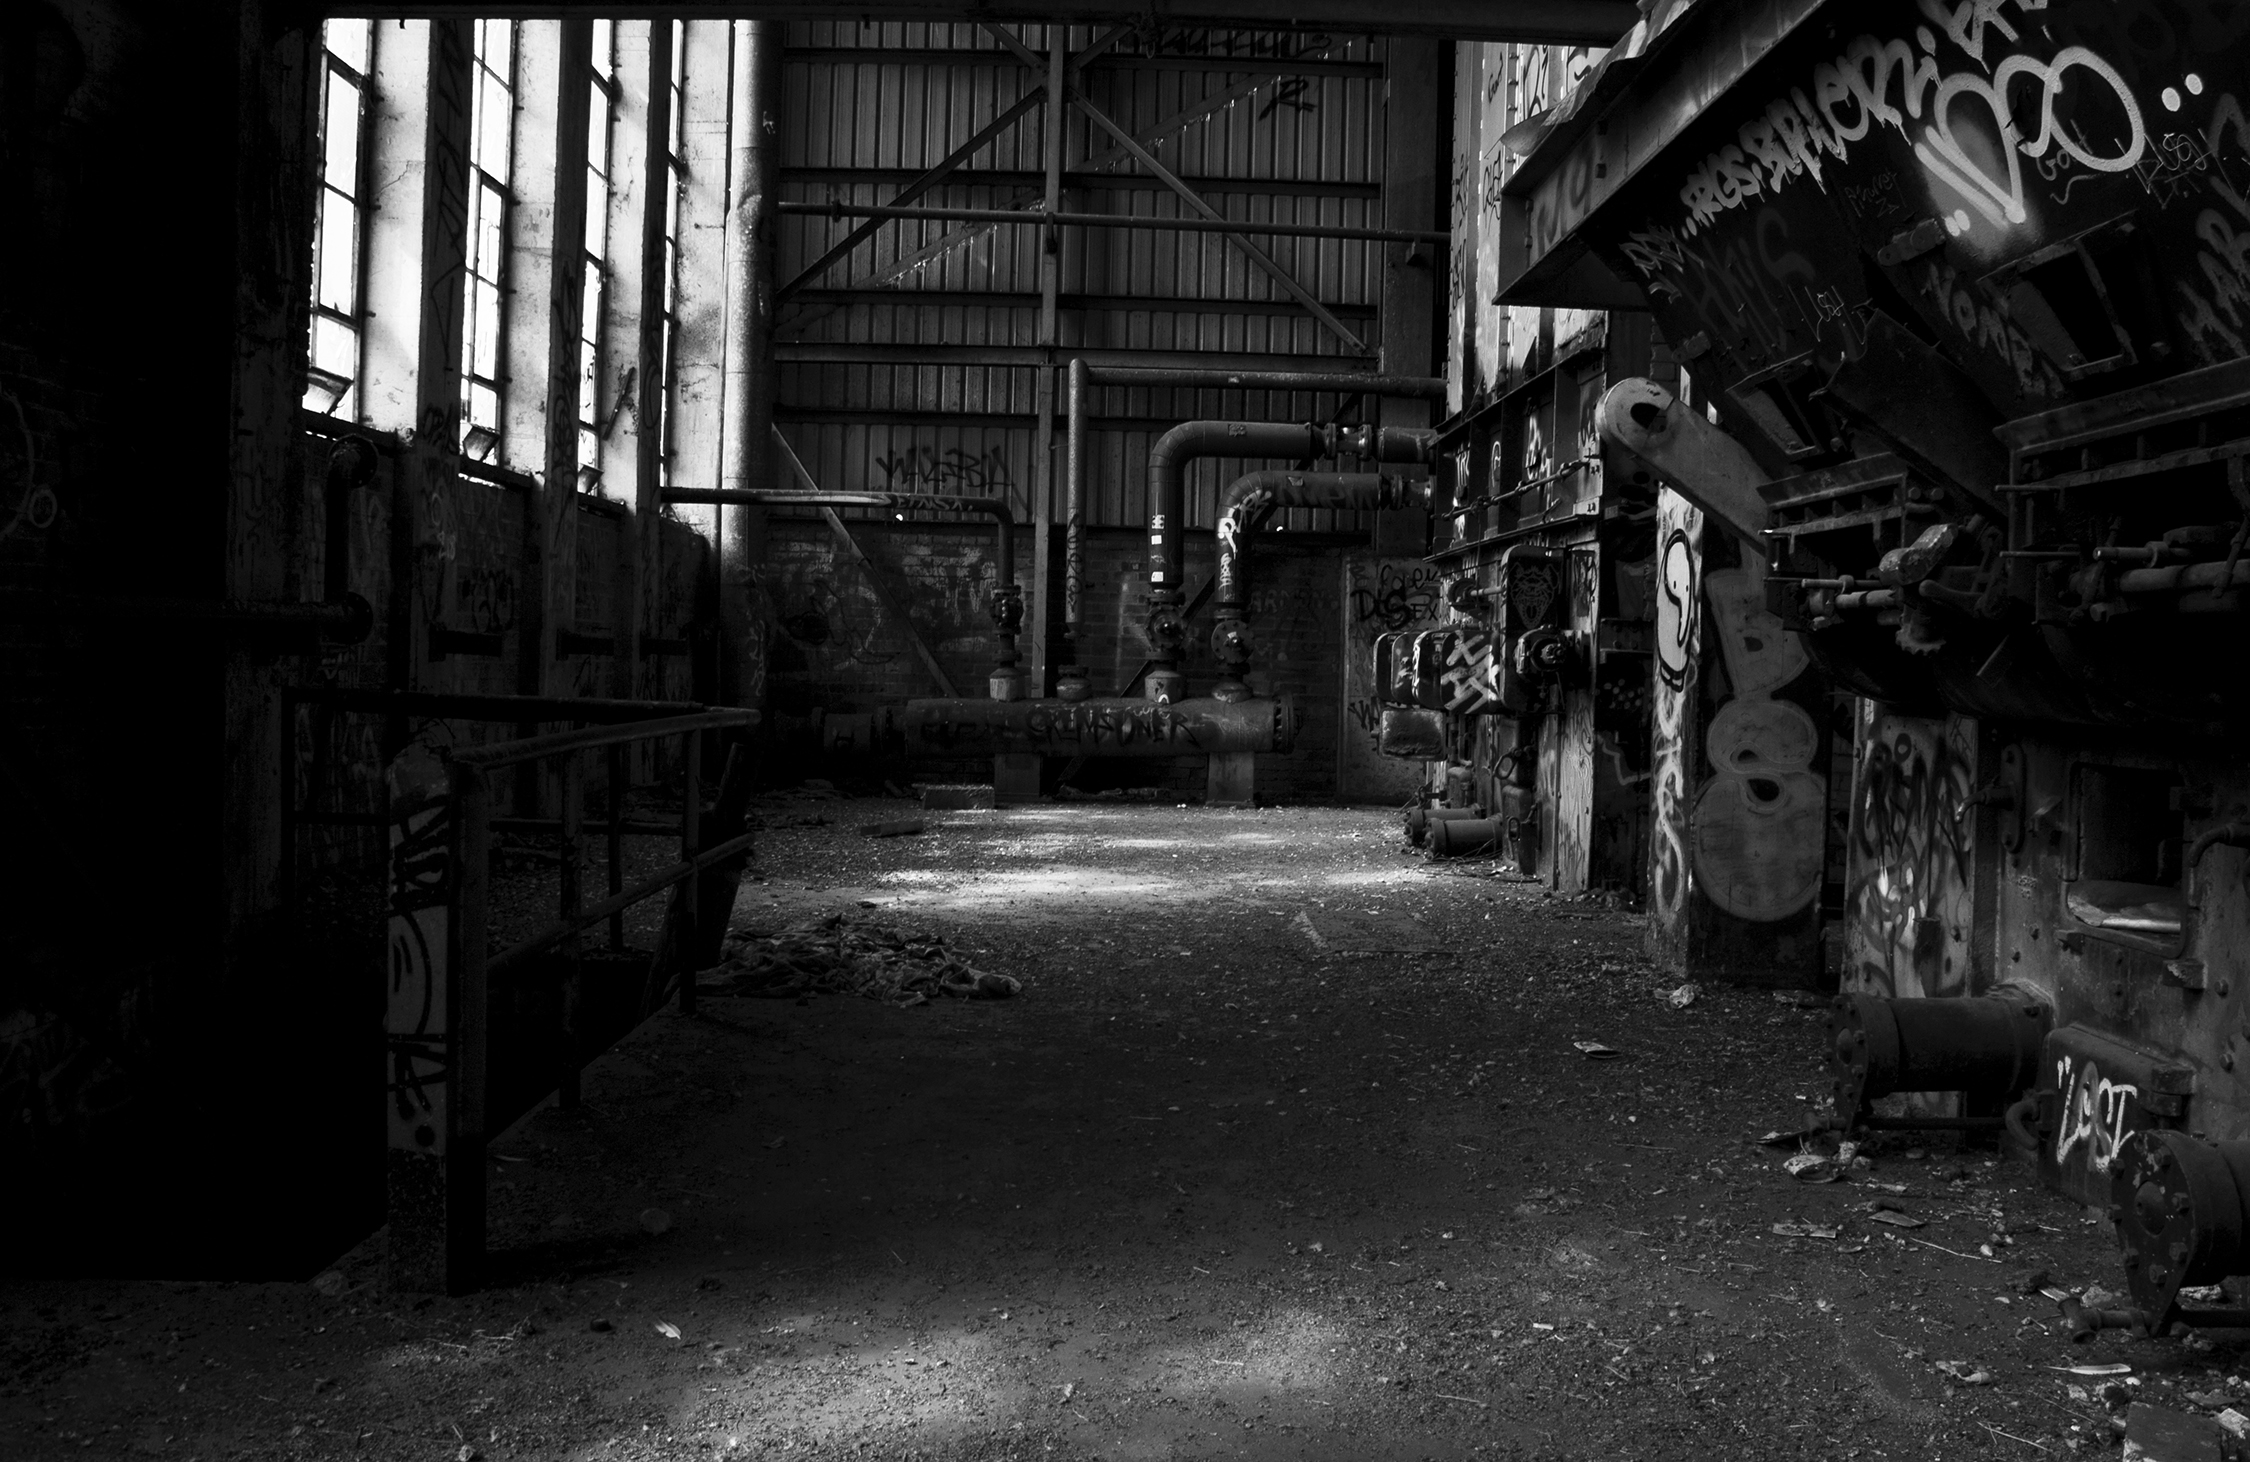 Old Melbourne - Derelict Factory